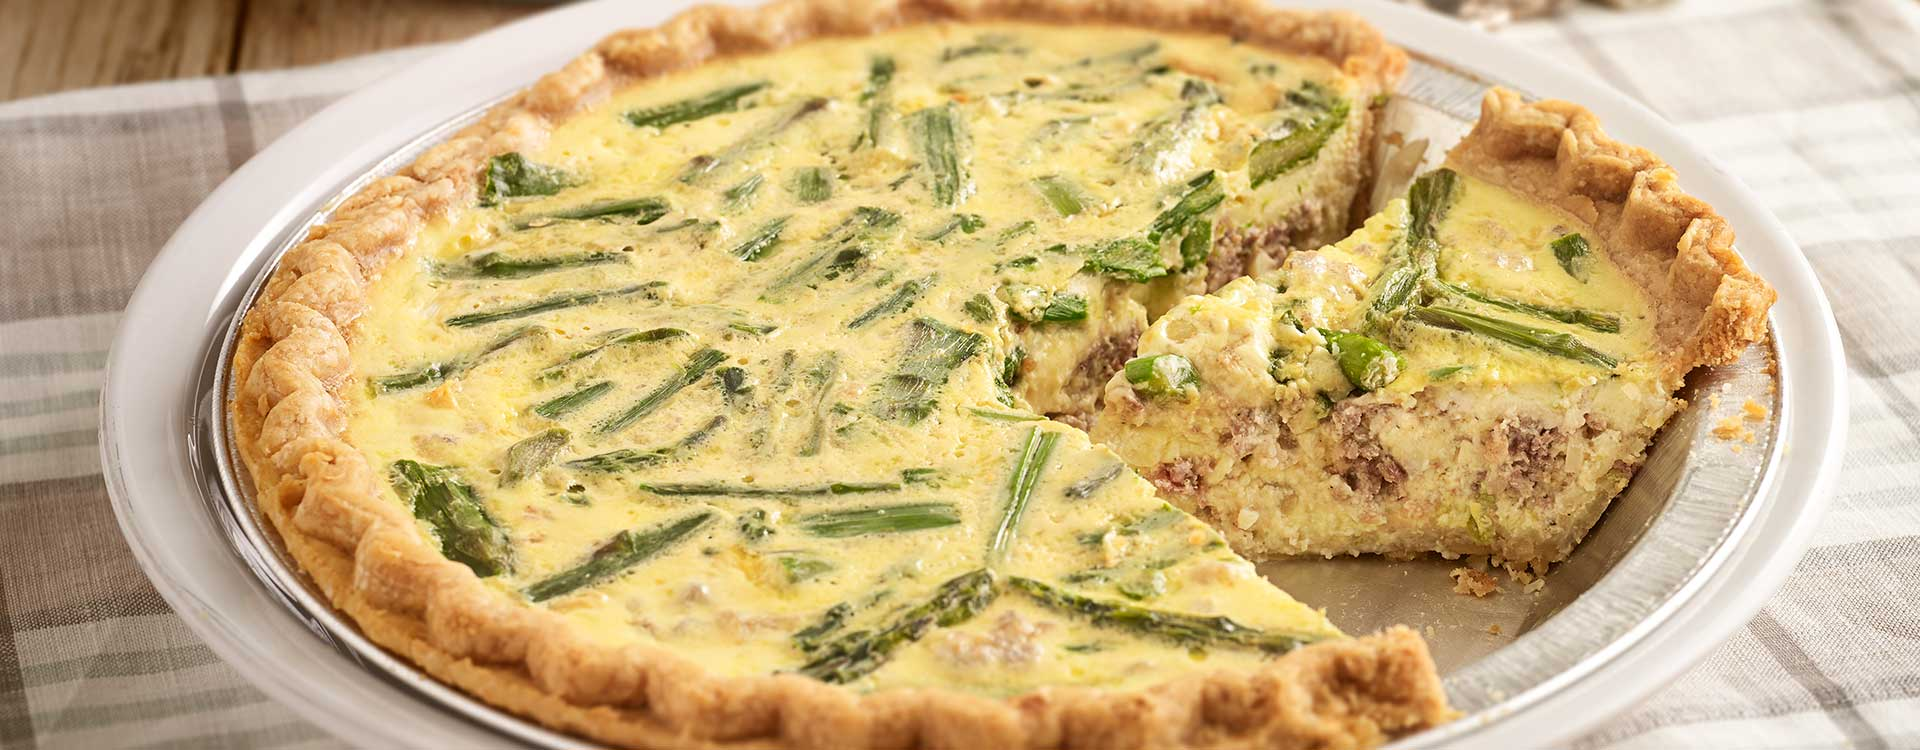 Hero - Sausage and Asparagus Quiche